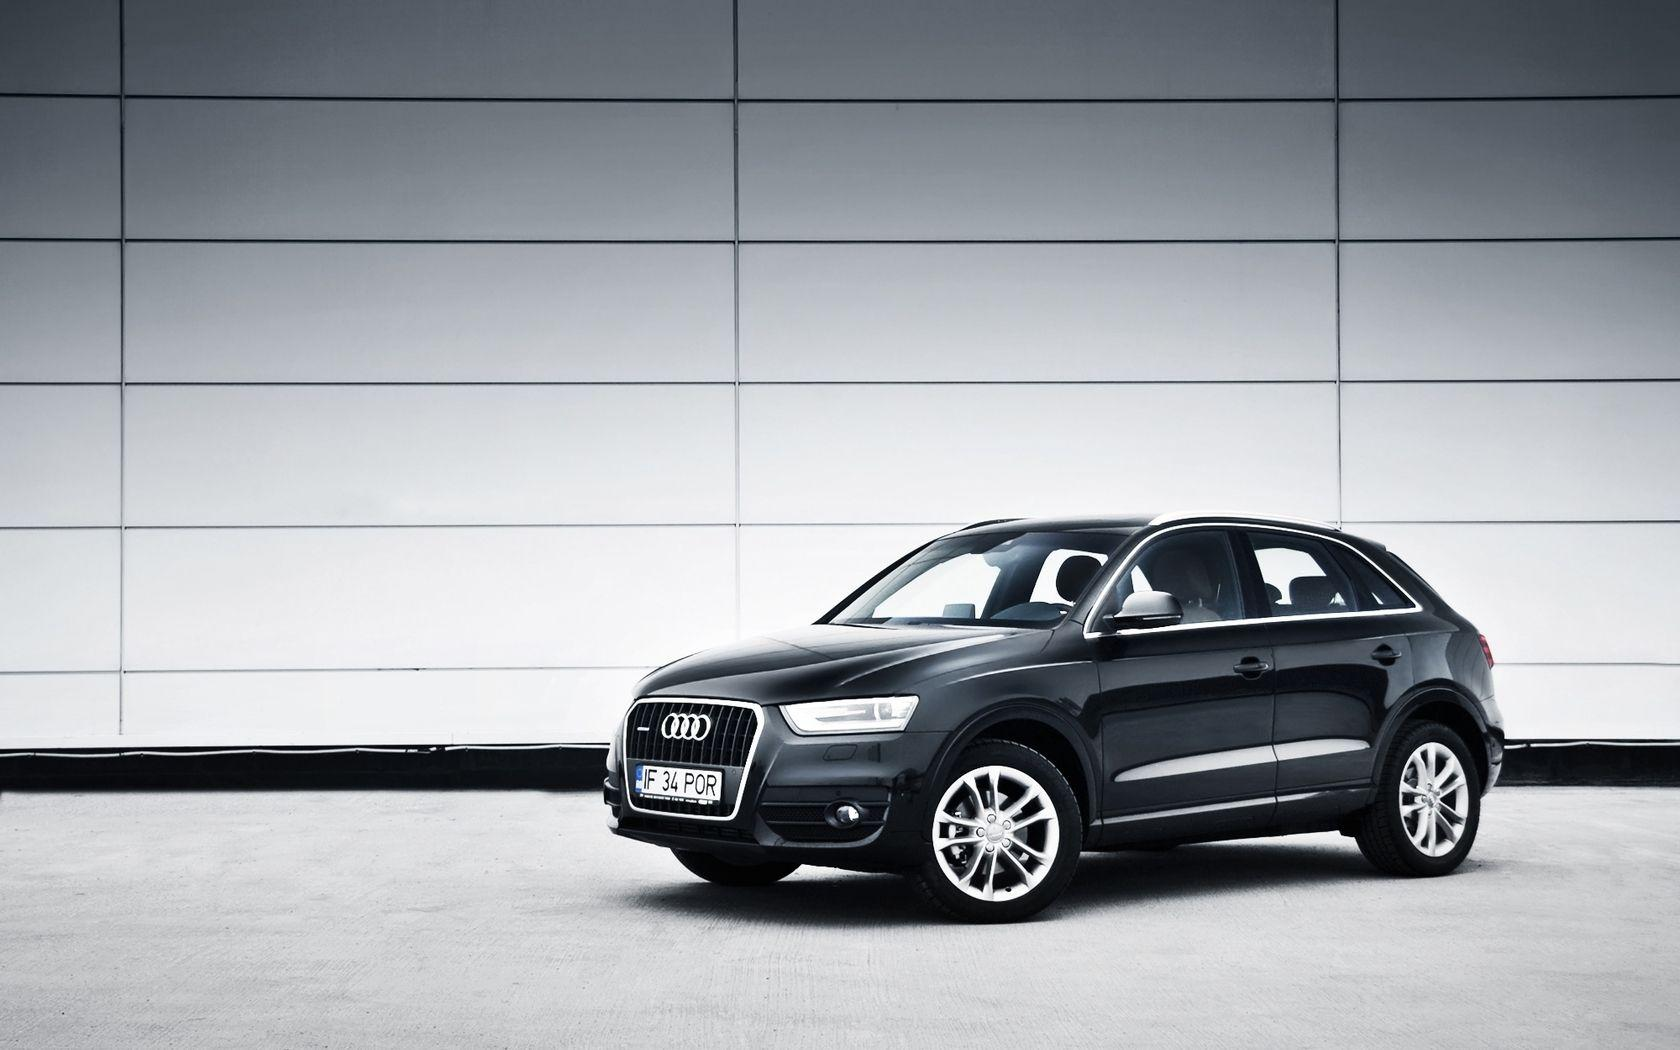 Audi Q3 Wallpapers 9 - illinois-liver